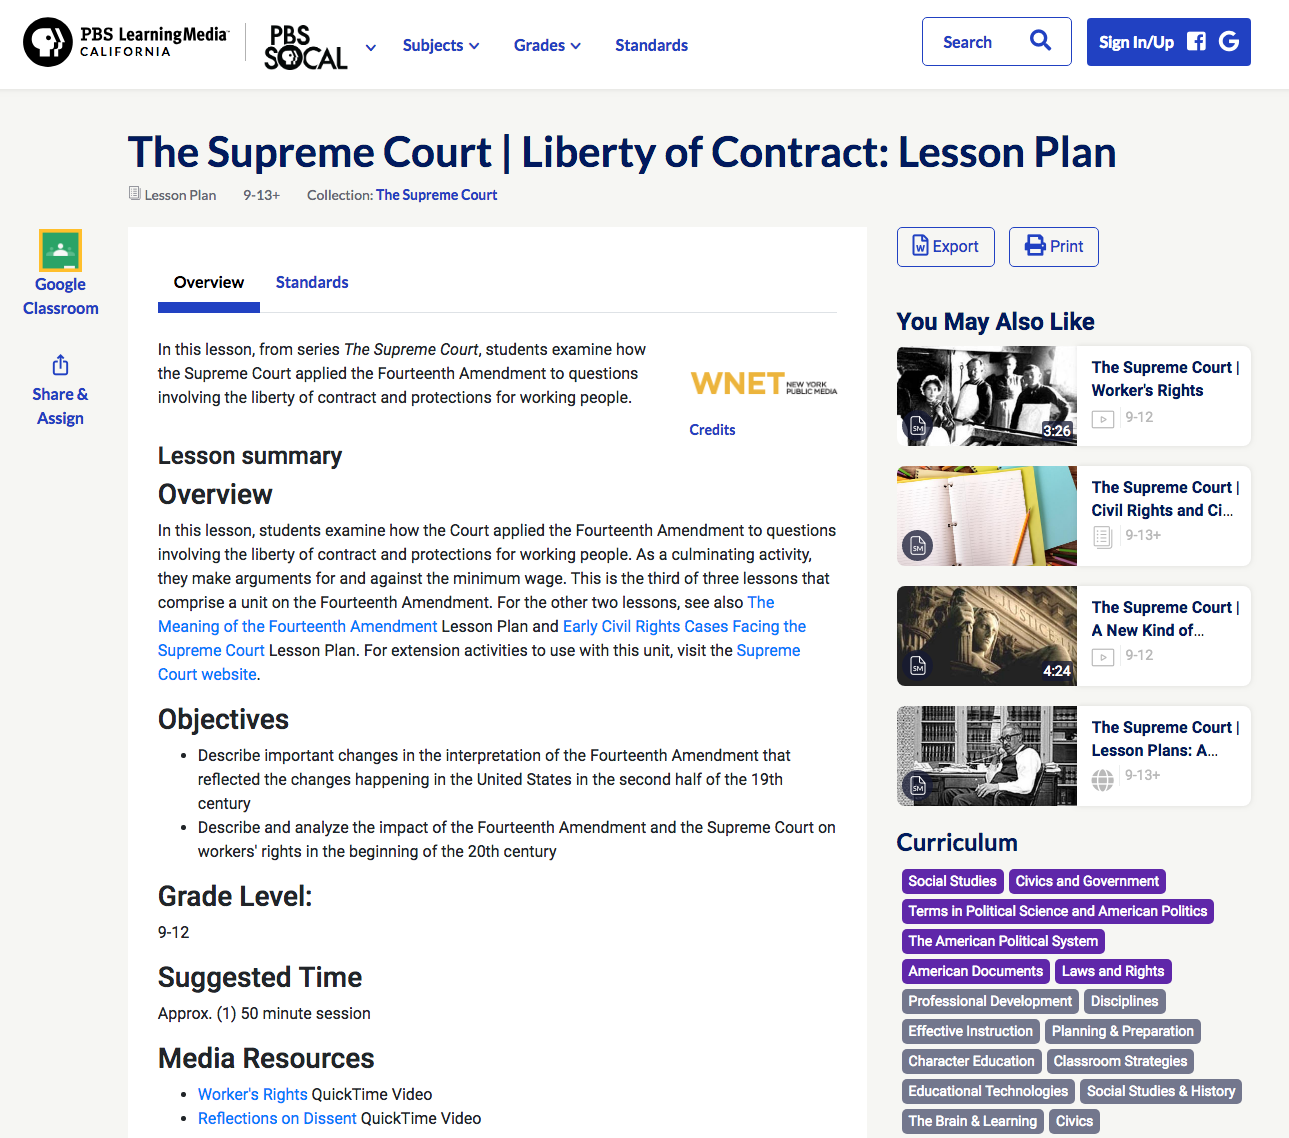 The Supreme Court: Liberty of Contract Lesson Plan